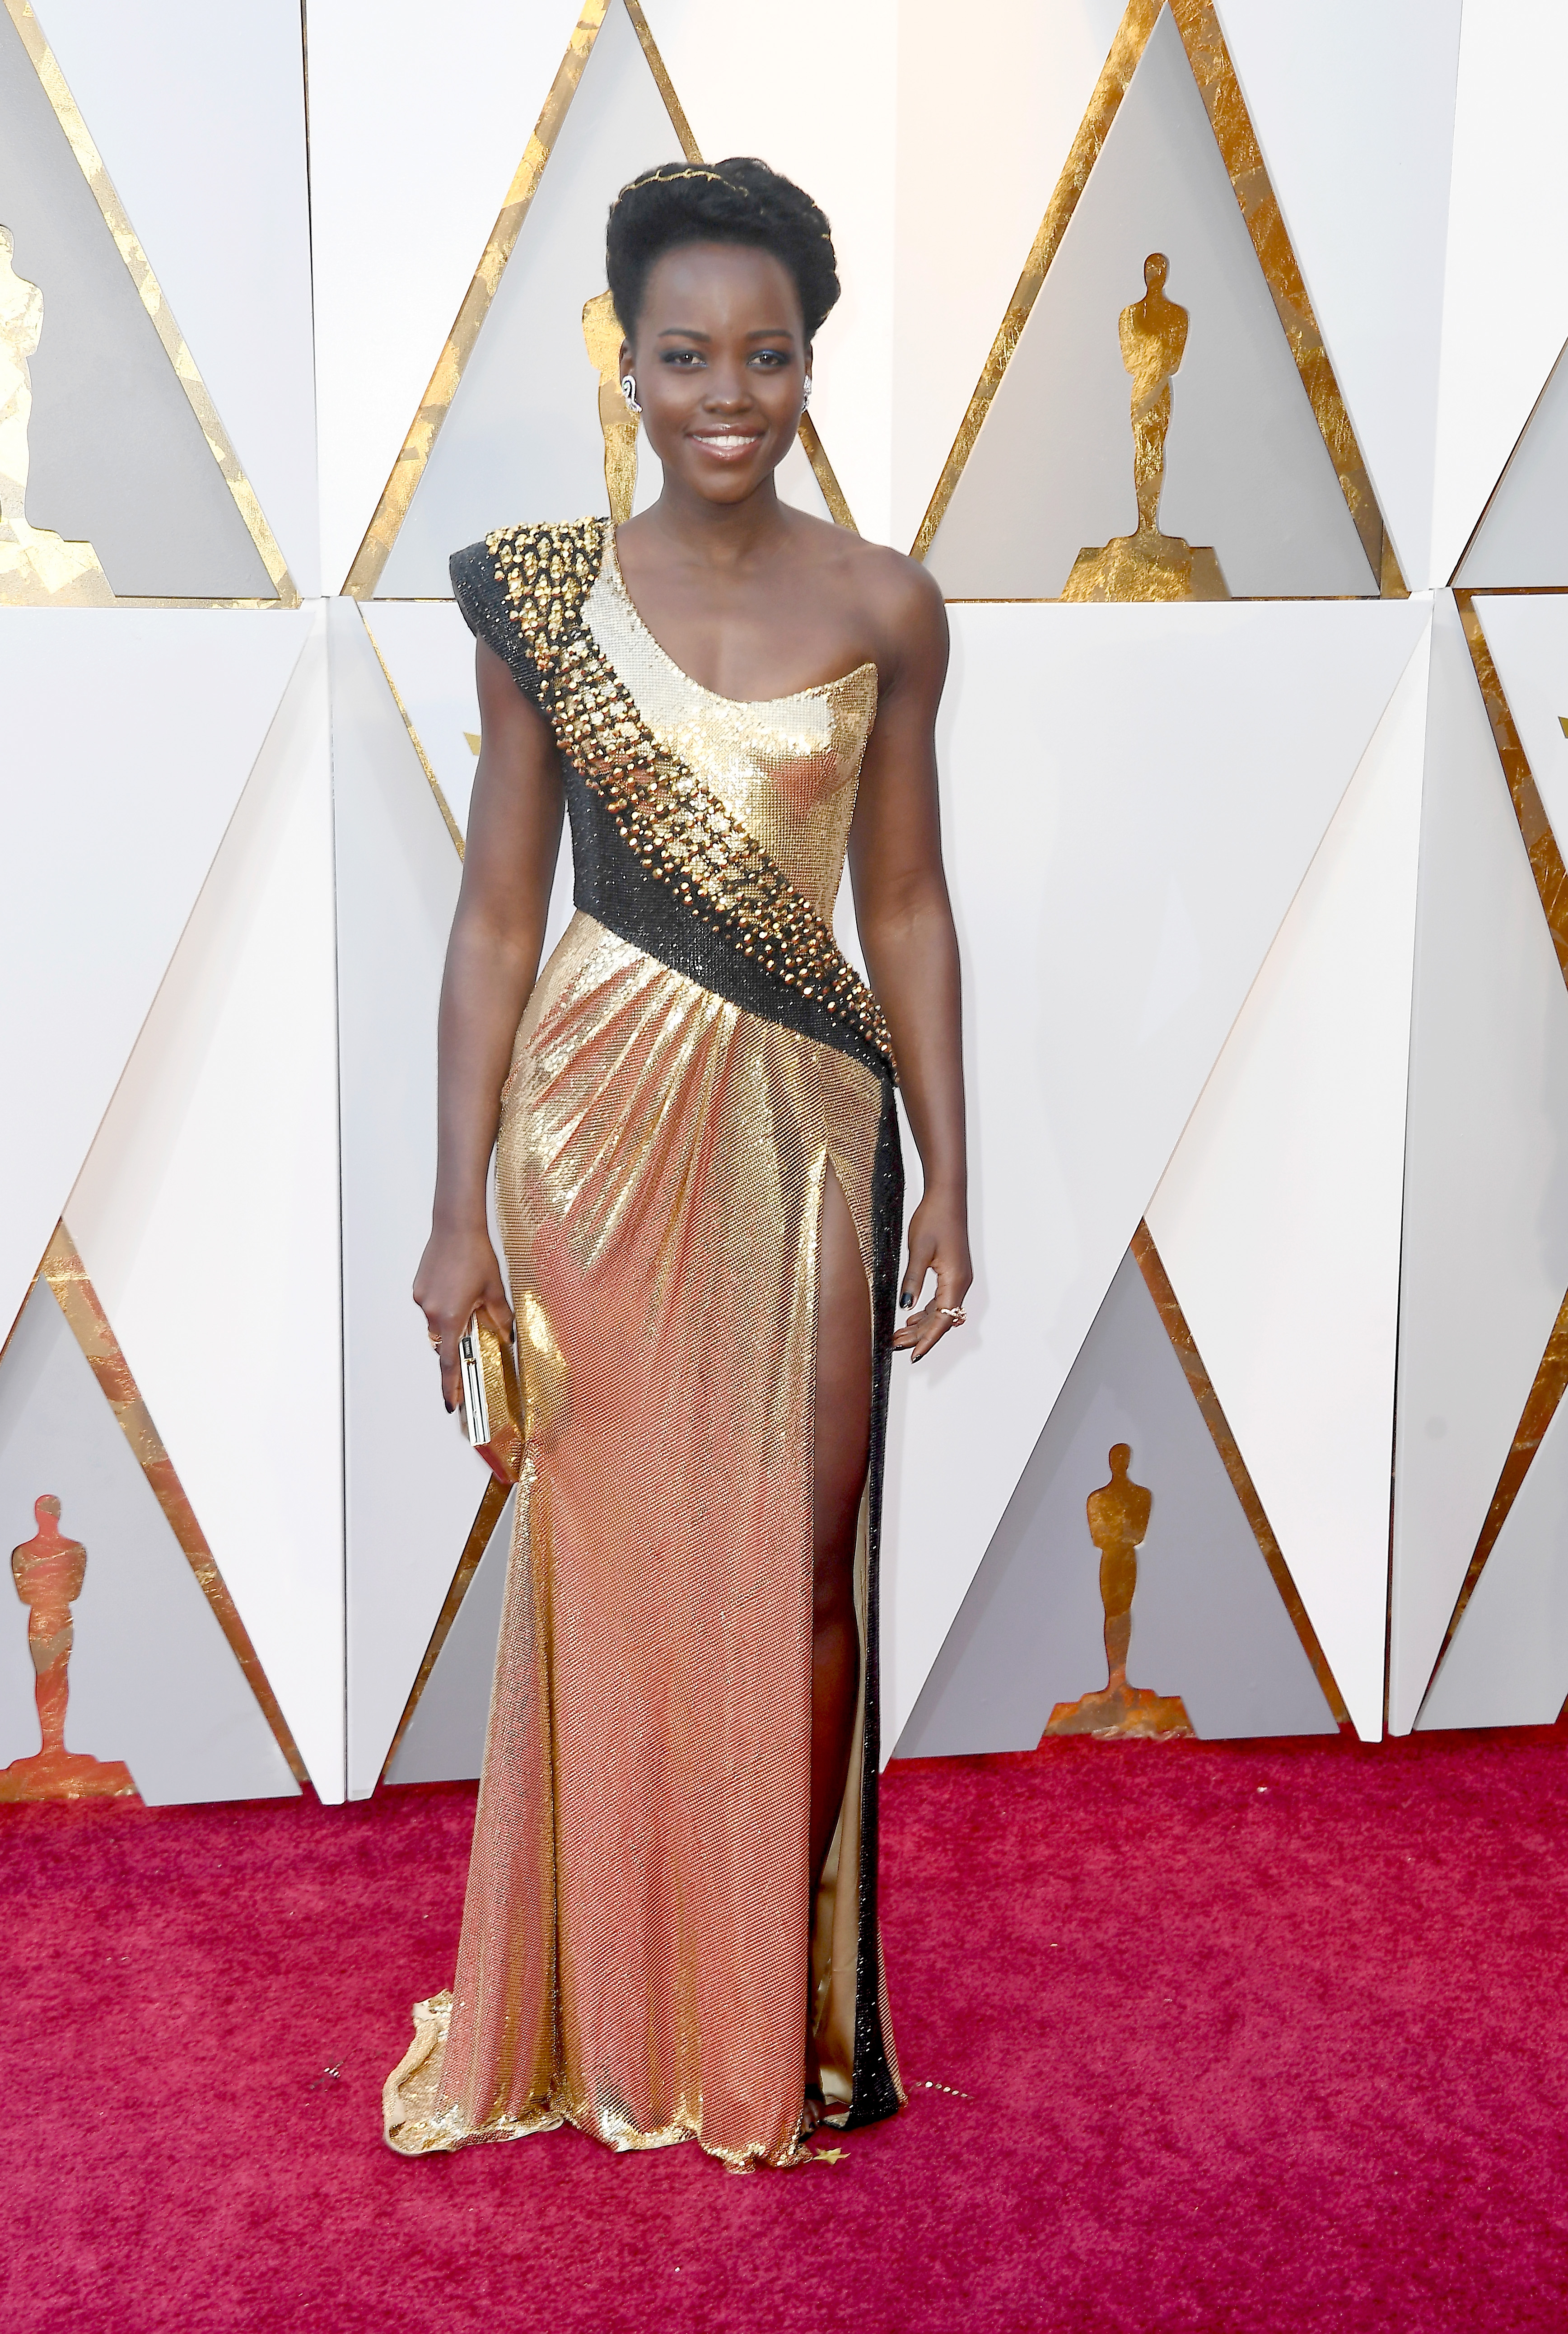 HOLLYWOOD, CA - MARCH 04: Lupita Nyong'o attends the 90th Annual Academy Awards at Hollywood & Highland Center on March 4, 2018 in Hollywood, California.  (Photo by Frazer Harrison/Getty Images)